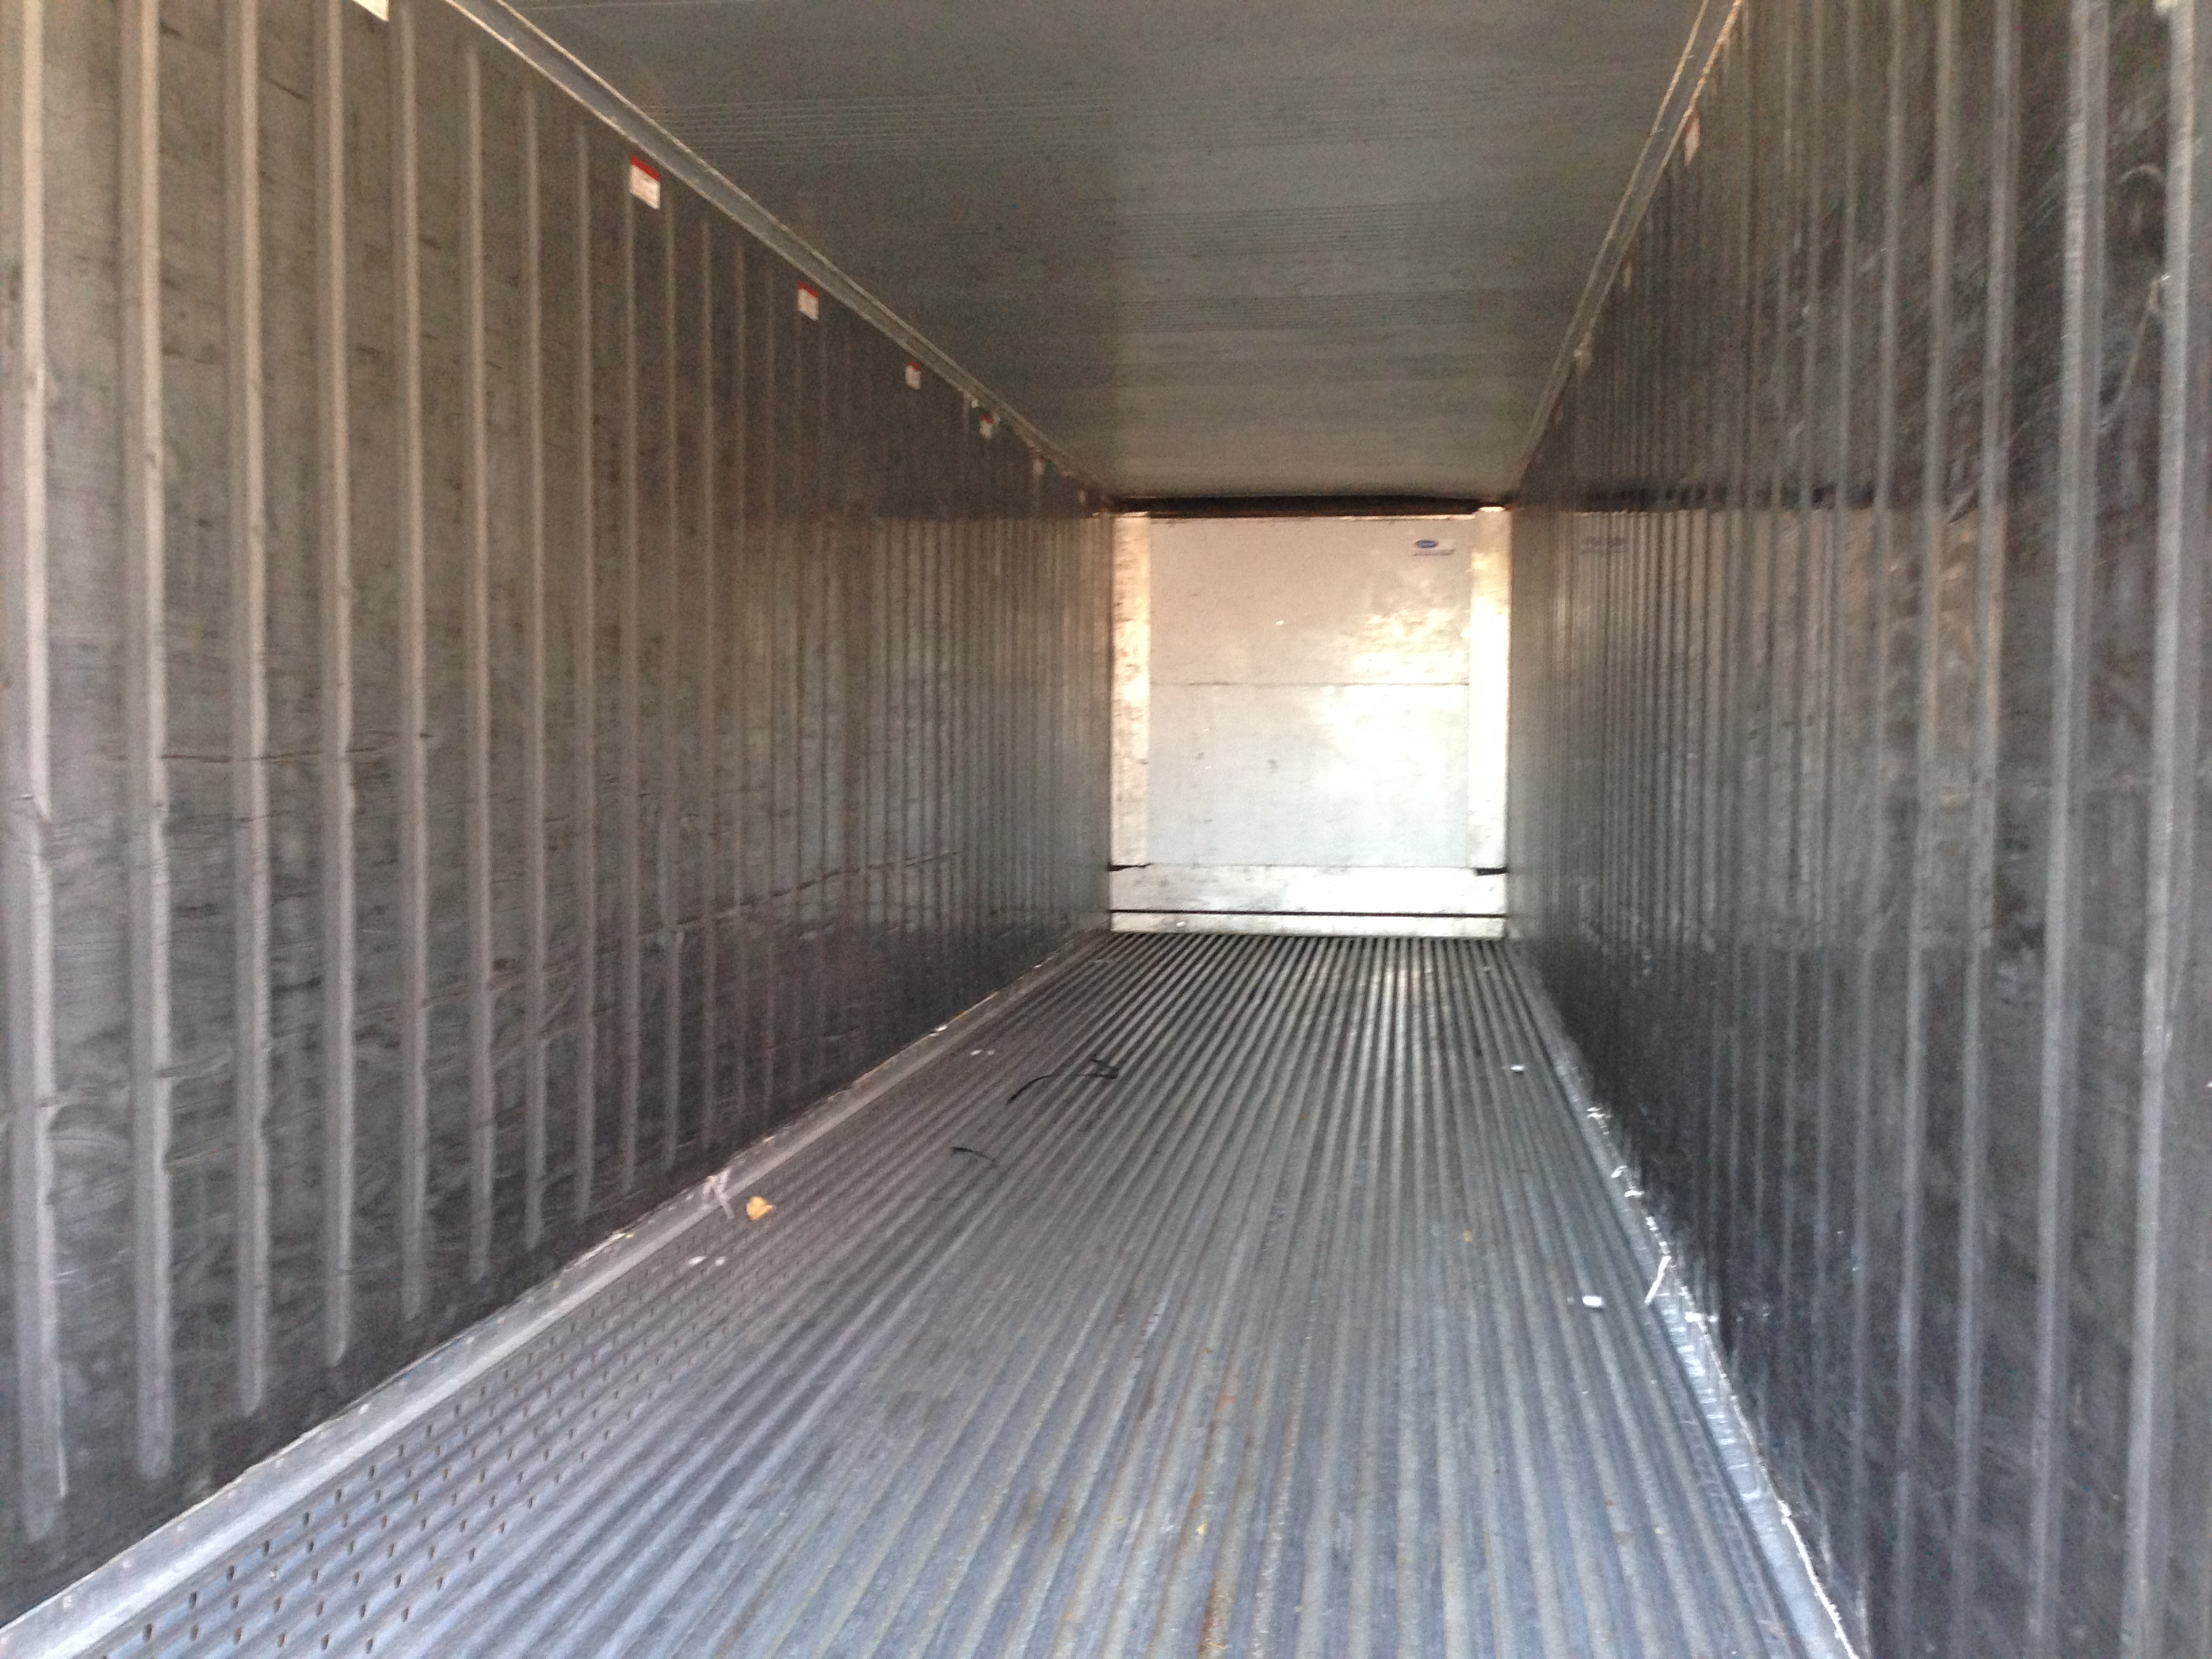 Used 40′ Refrigerated Cargo Container Interior